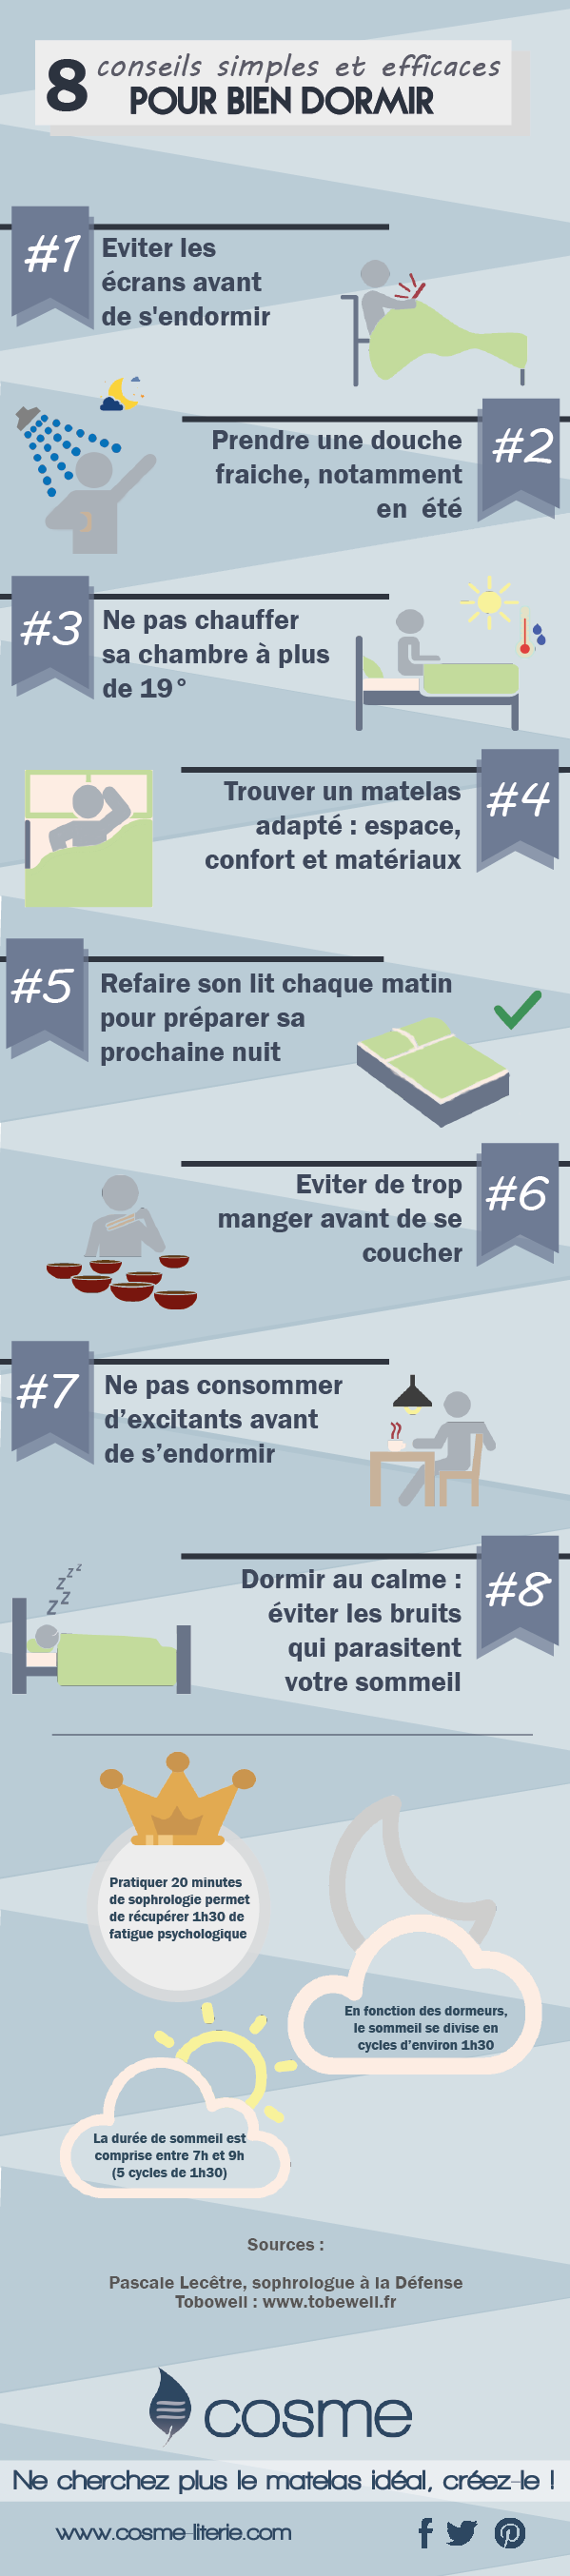 infographie-cosme literie.png